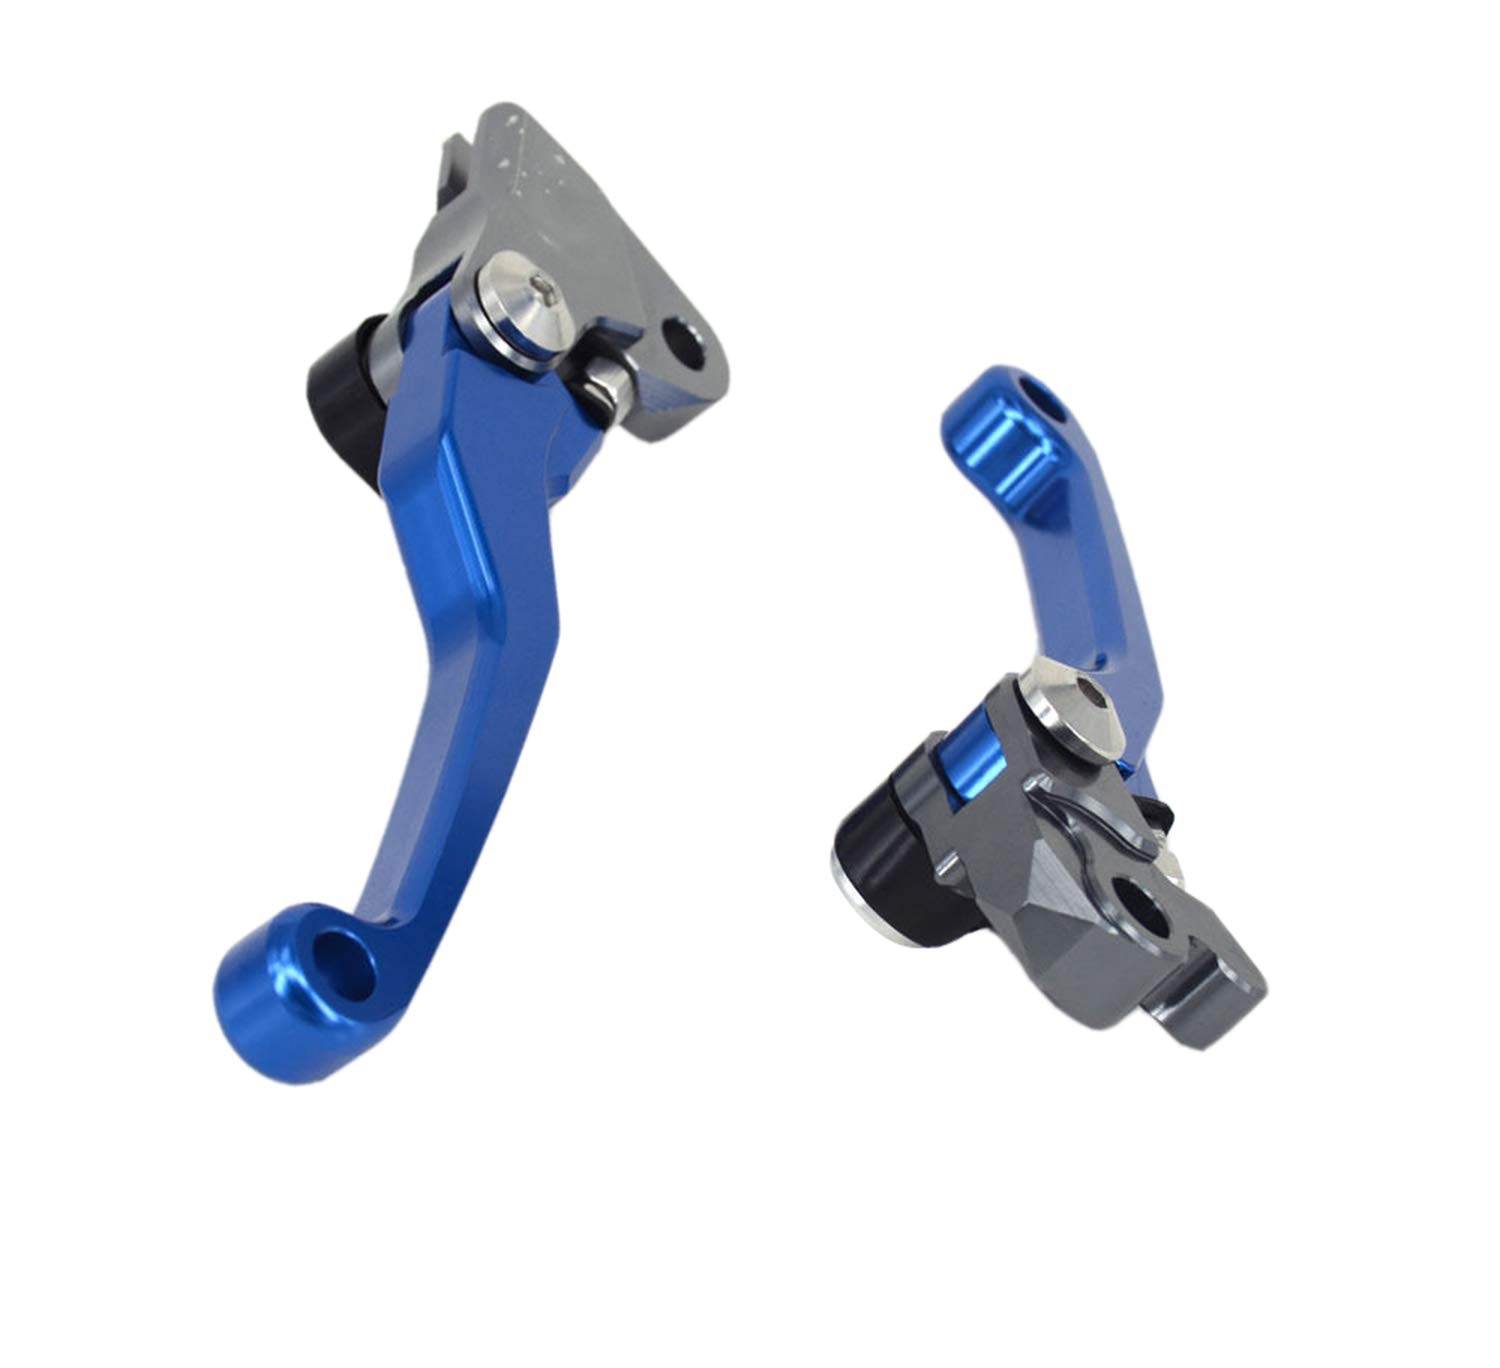 Billet Pivot Brake Clutch Levers for Yamaha WR250R//X SEROW225//250 TTR250 with Handlebar Grips Air Vent Tube